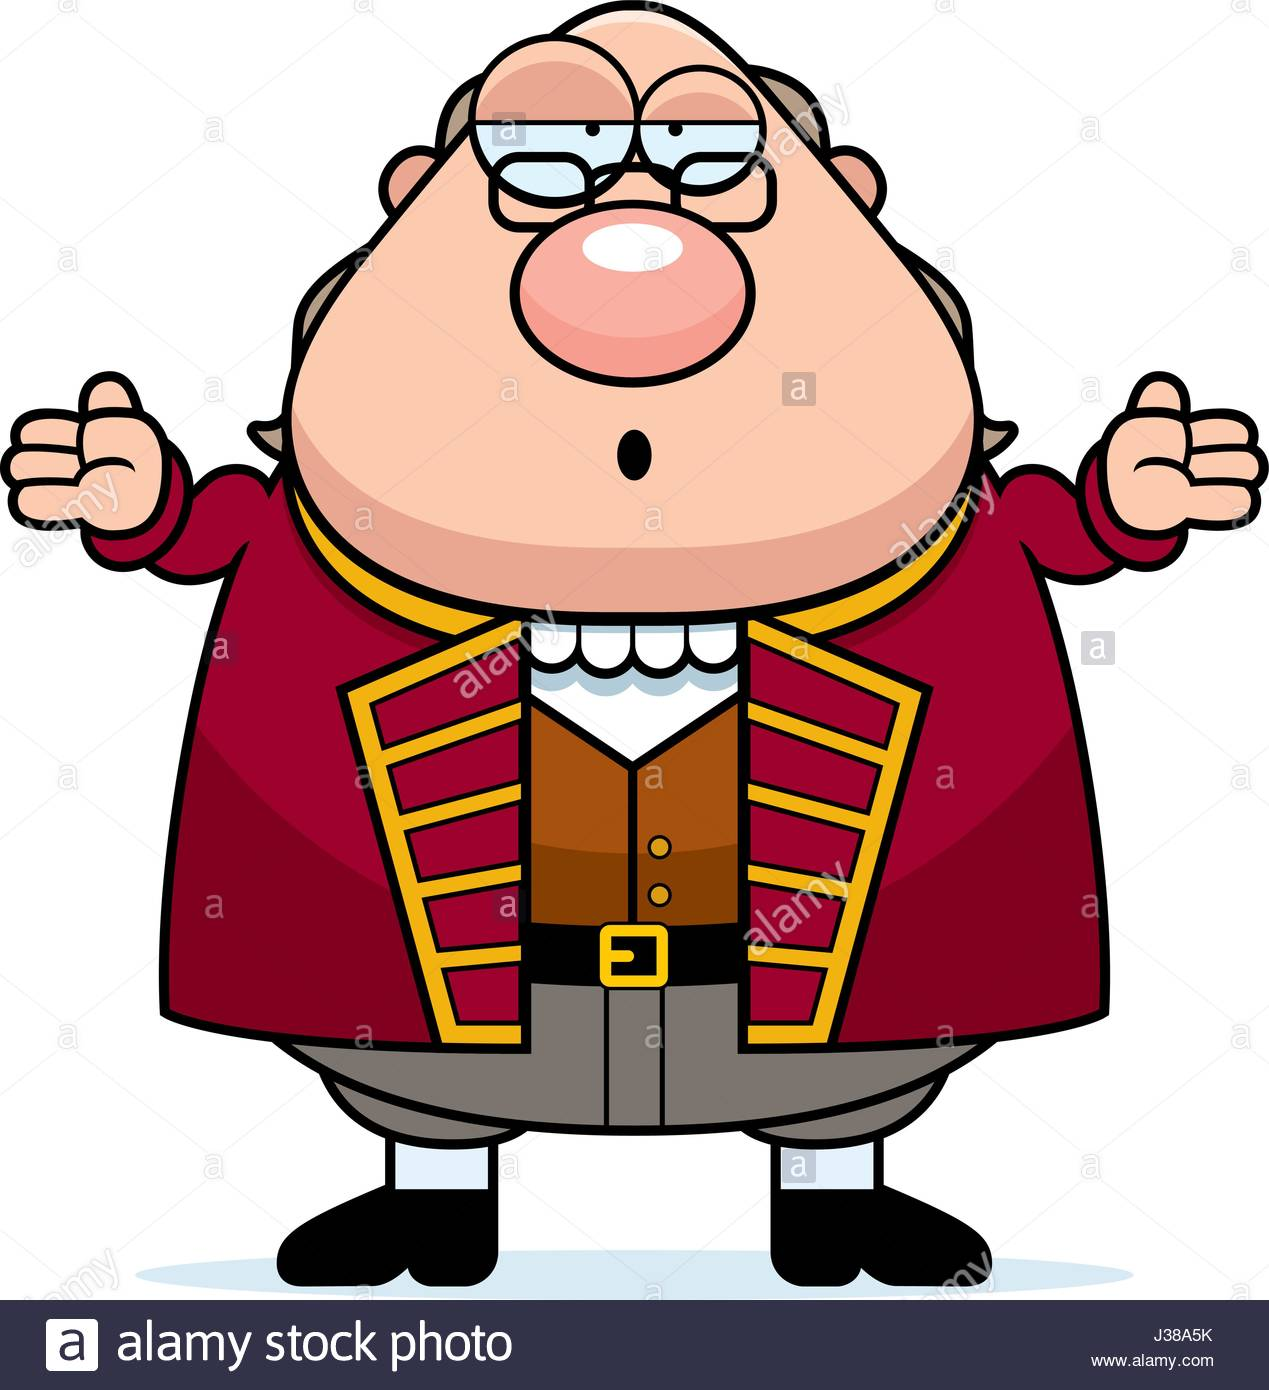 1269x1390 A Cartoon Illustration Of Ben Franklin Looking Confused Stock